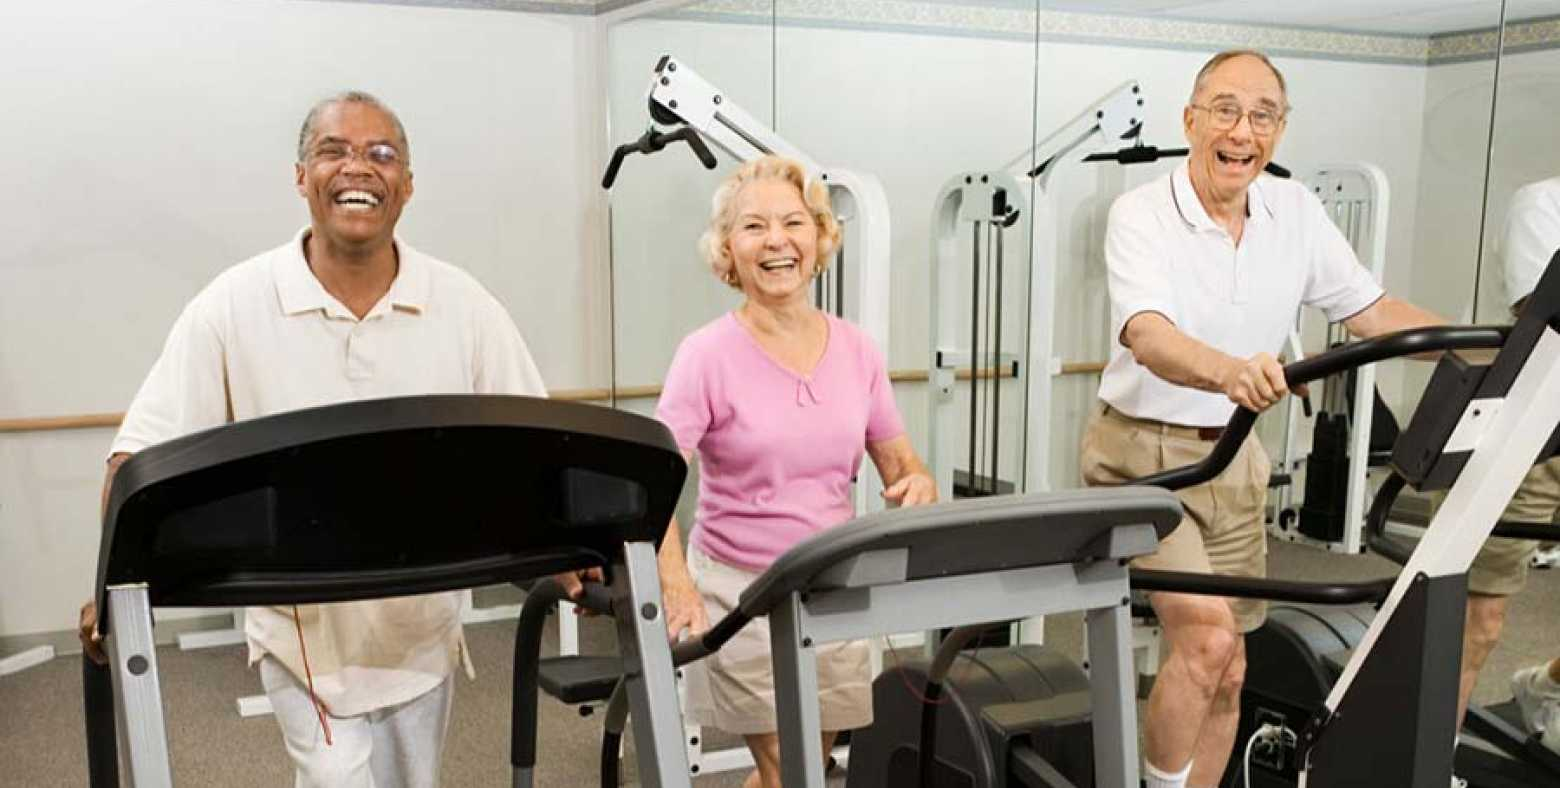 Adults exercising on treadmill